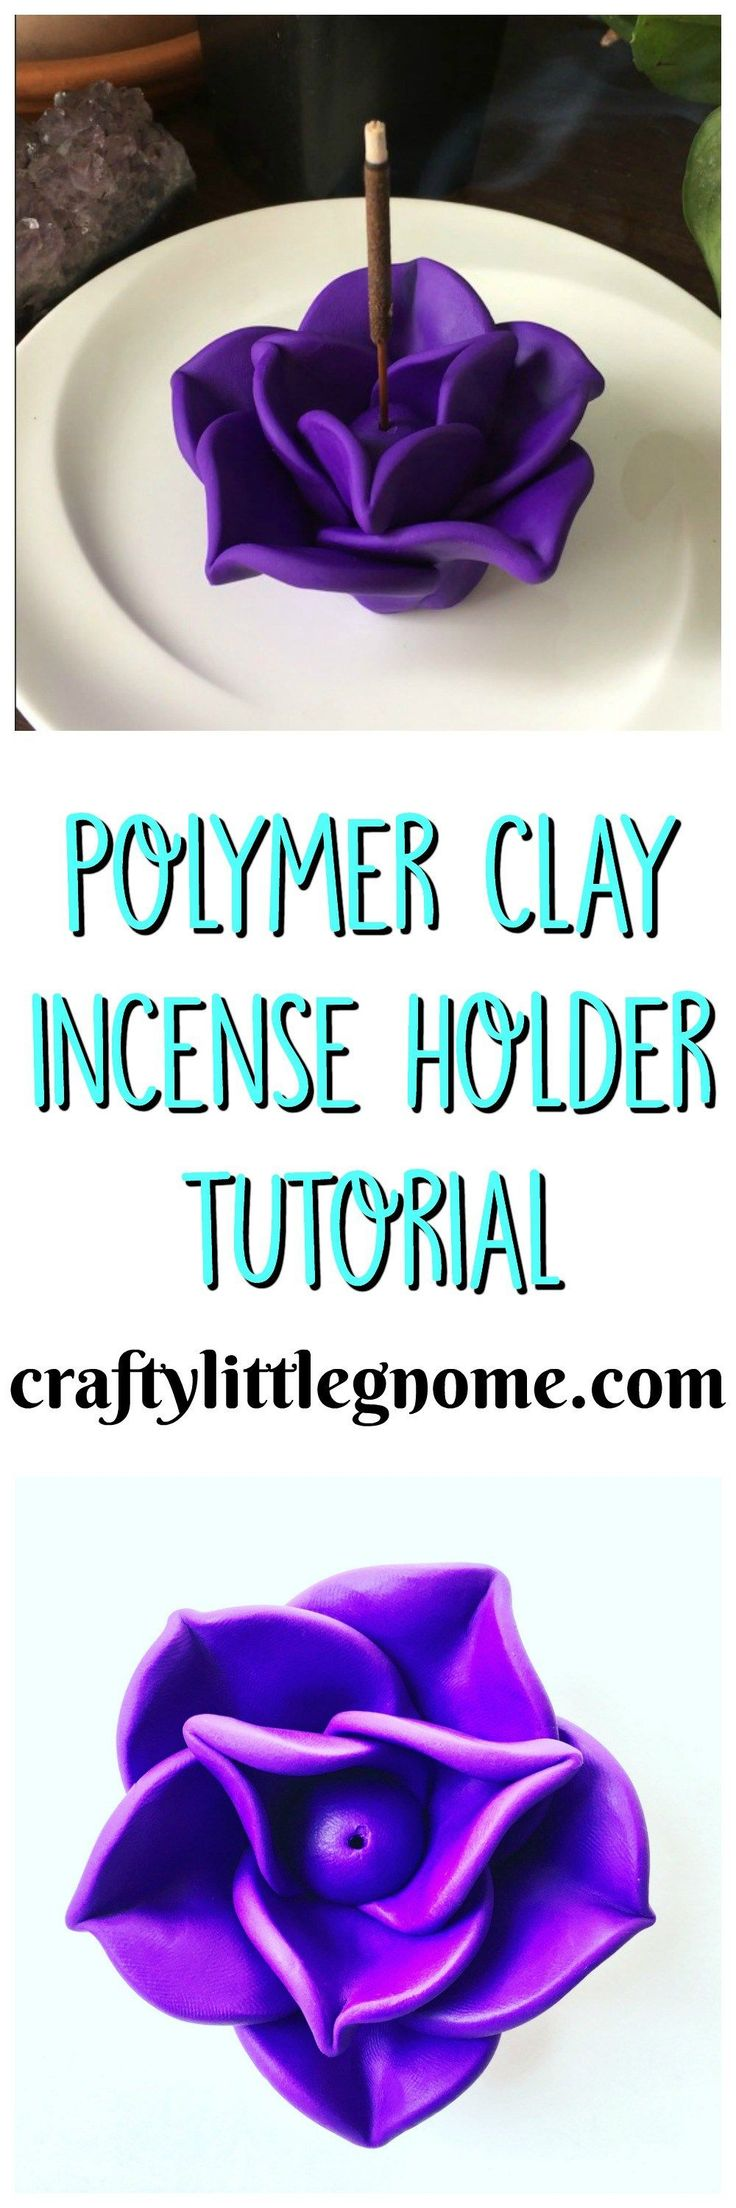 Make this cute flower clay incense holder with purple polymer clay. Form petals around a small clay ball and bake it in the oven to harden.